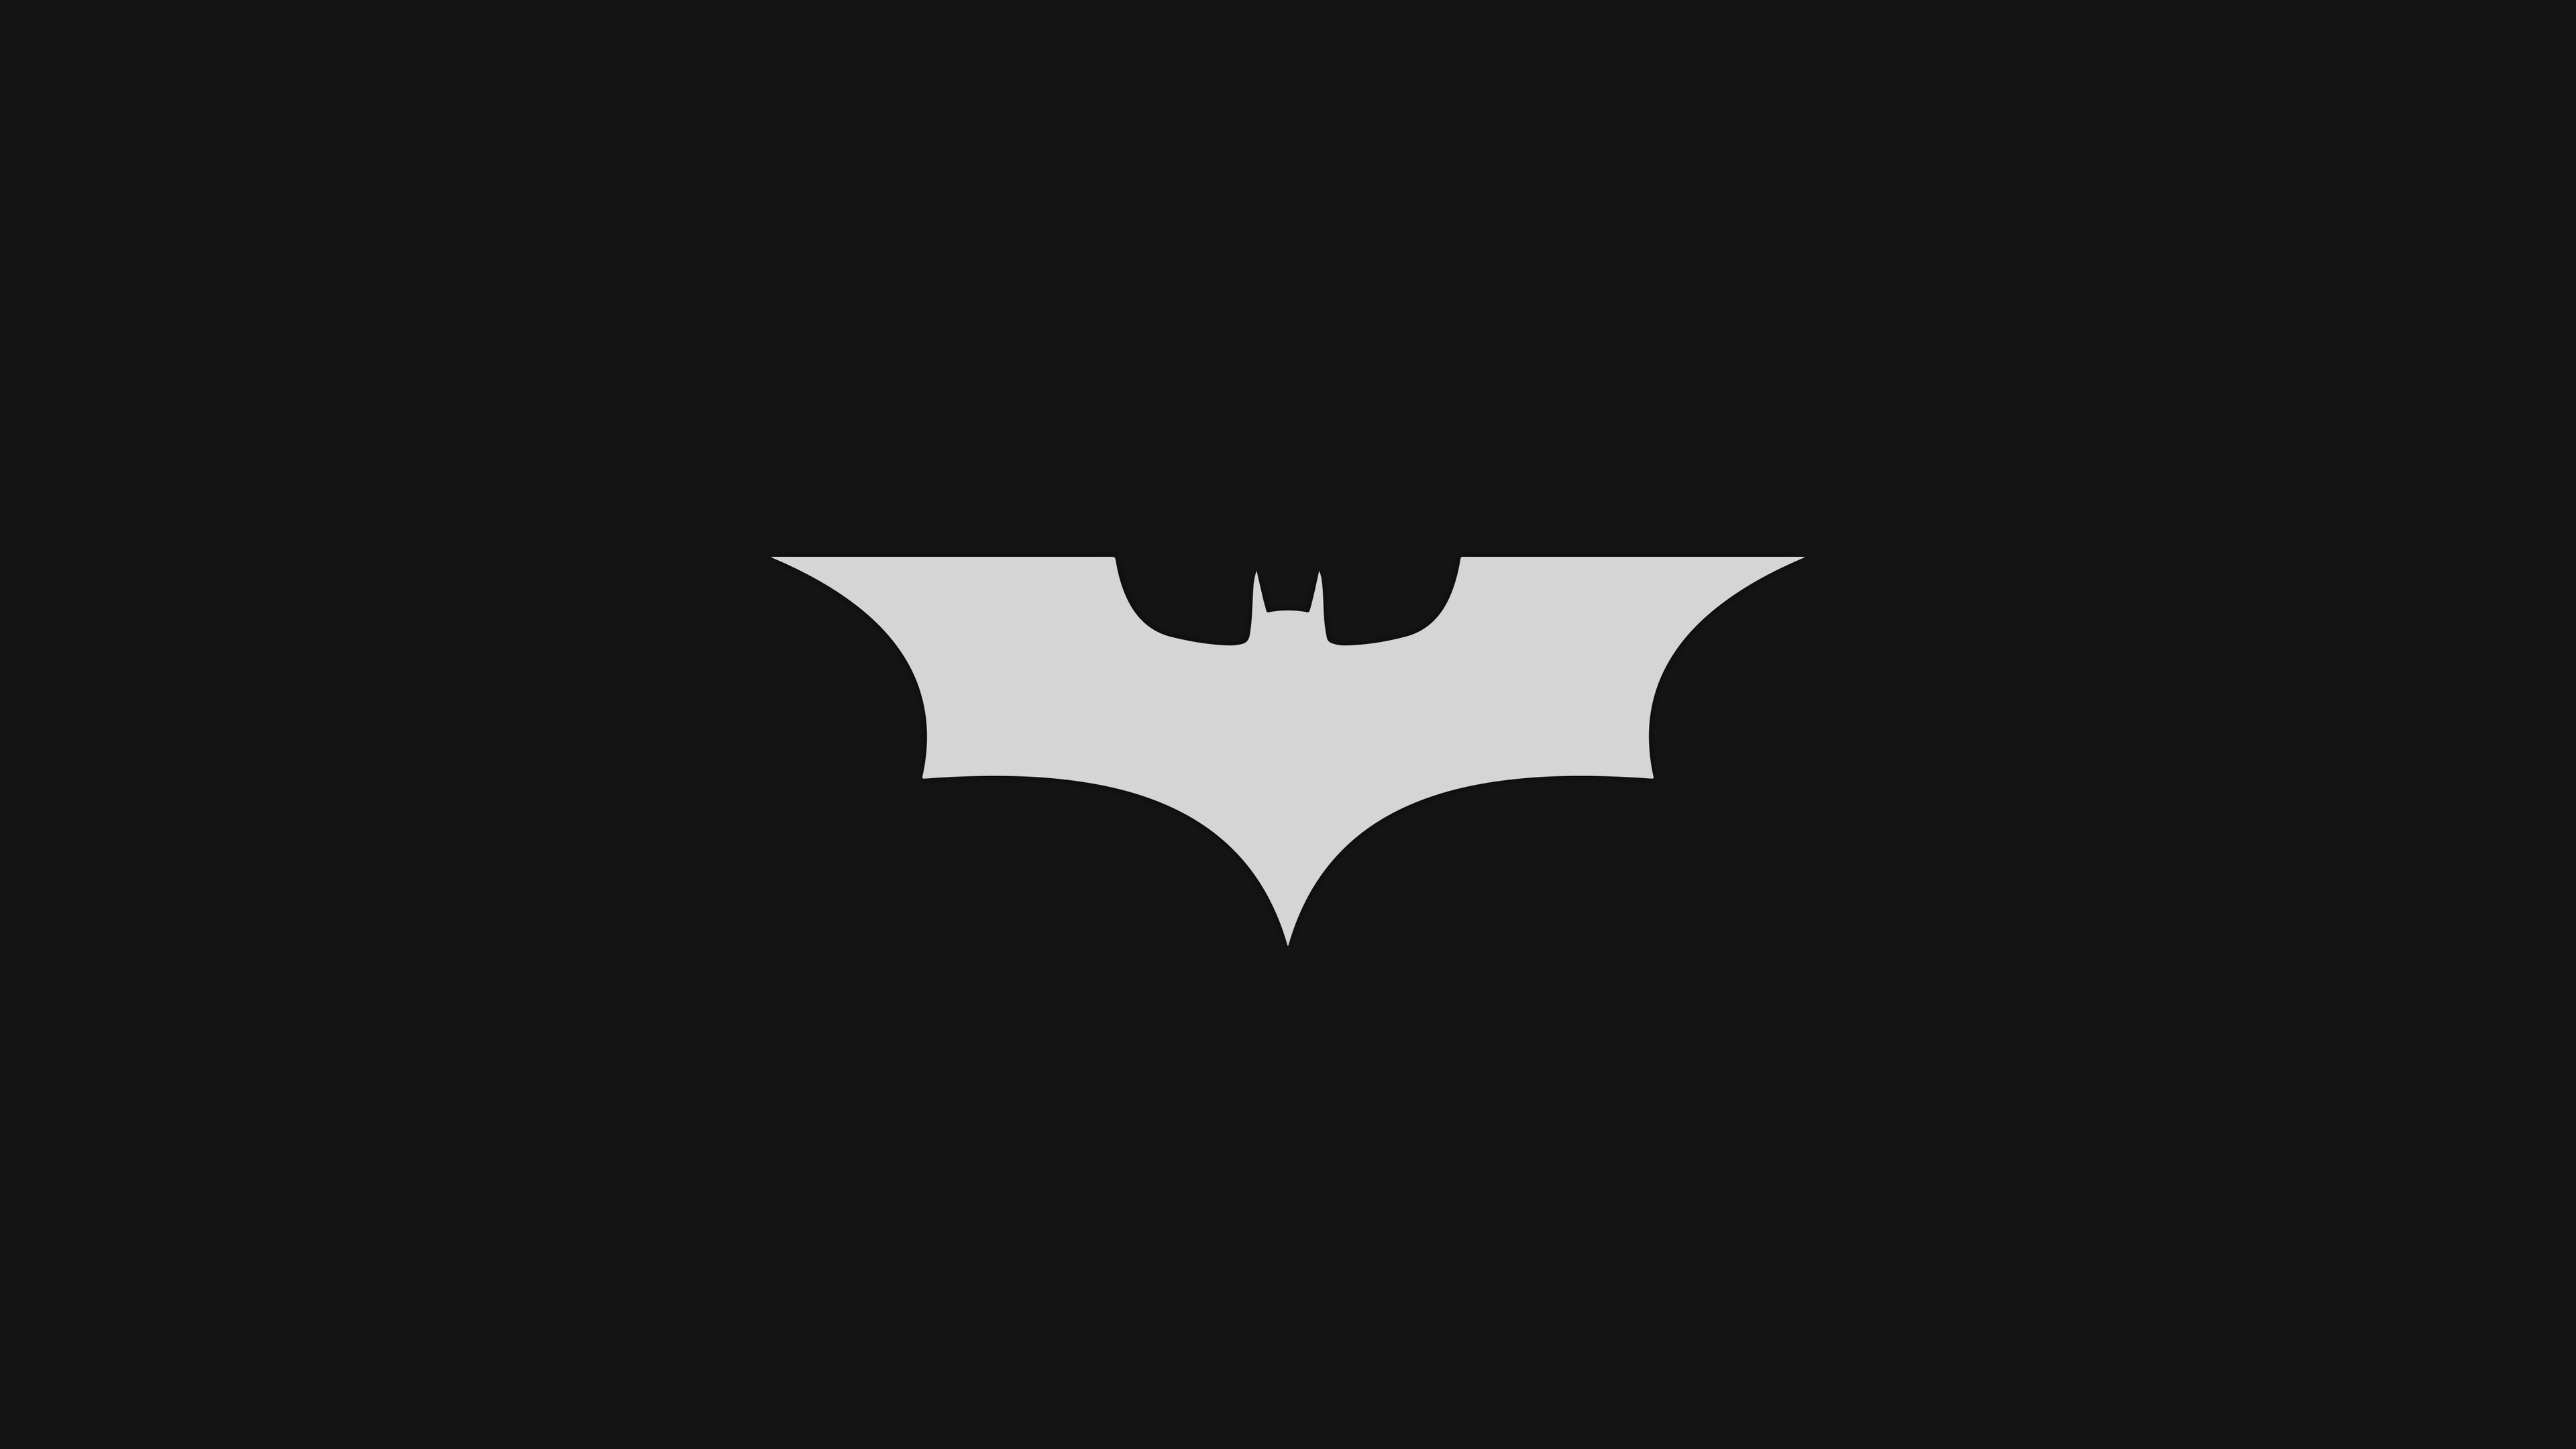 batman dark minimal logo 1572368848 - Batman Dark Minimal Logo - superheroes wallpapers, minimalist wallpapers, minimalism wallpapers, hd-wallpapers, digital art wallpapers, dark wallpapers, batman wallpapers, artwork wallpapers, artist wallpapers, 4k-wallpapers